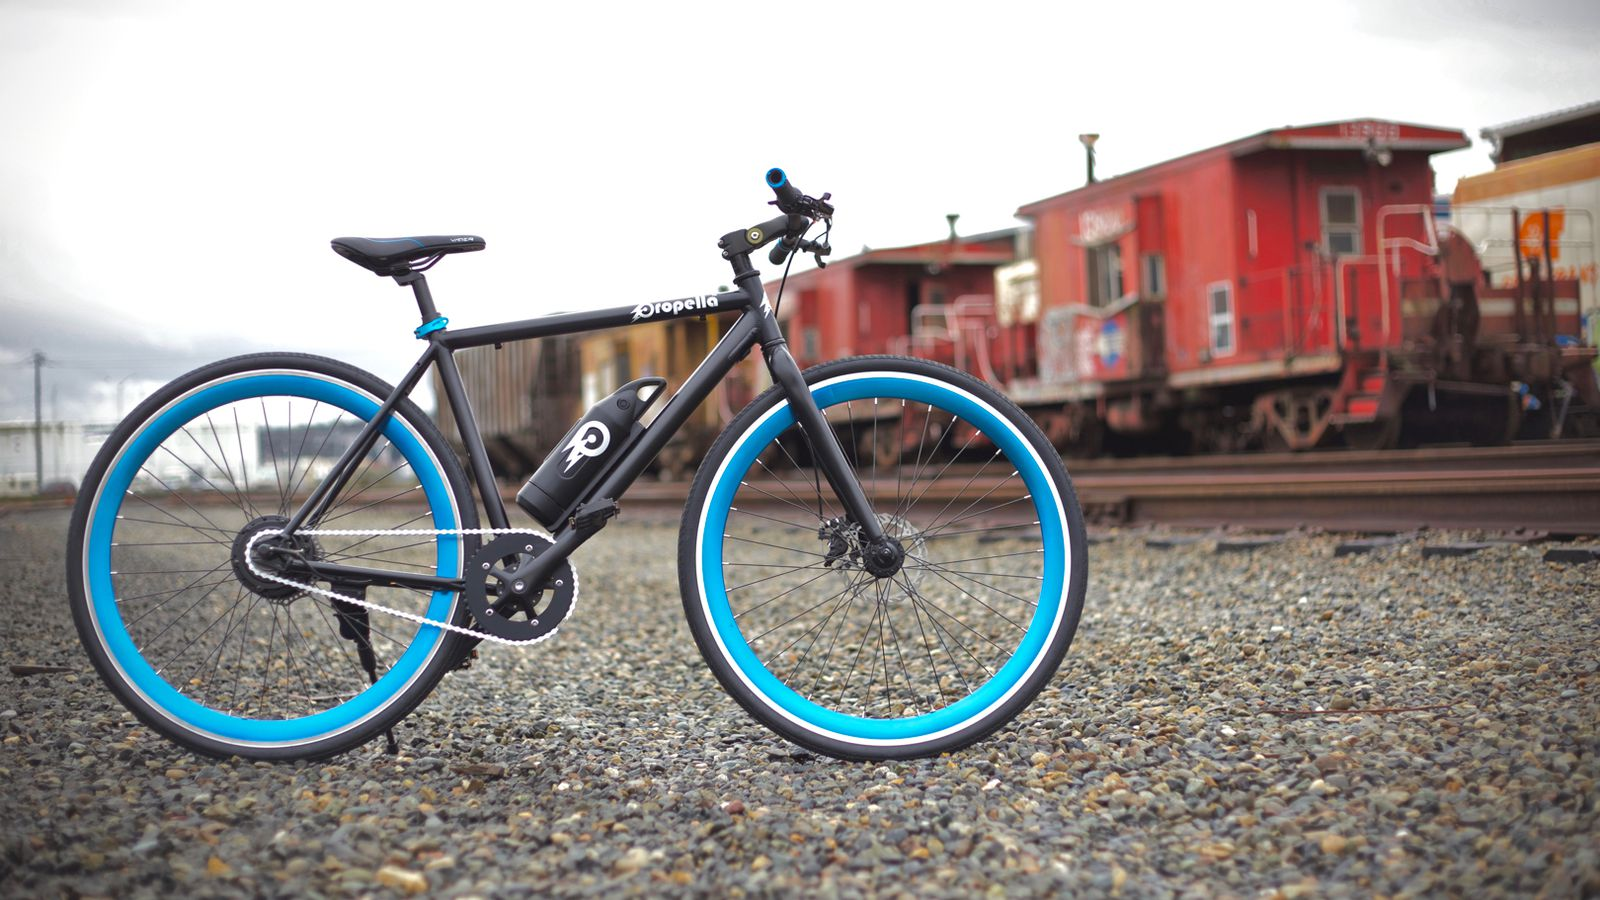 New Lightweight Electric Bike Is Ready For Urban Commutes